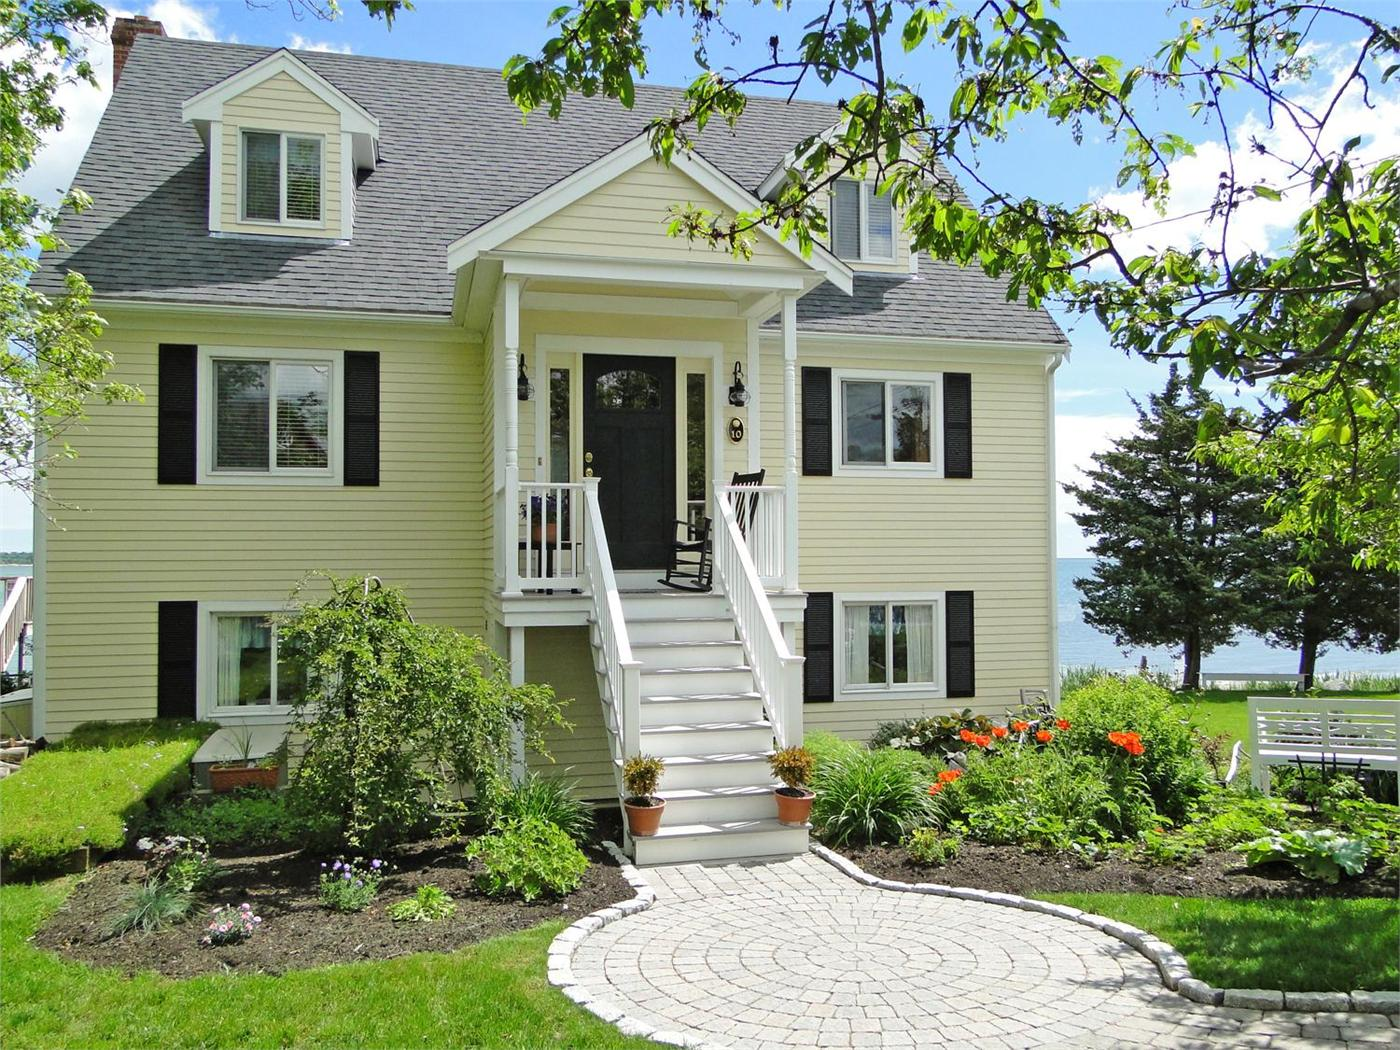 rentals cape wellfleet central in location oceanview a bedroom cottage realty vacation ma provincetown cod cozy great page cottages exterior